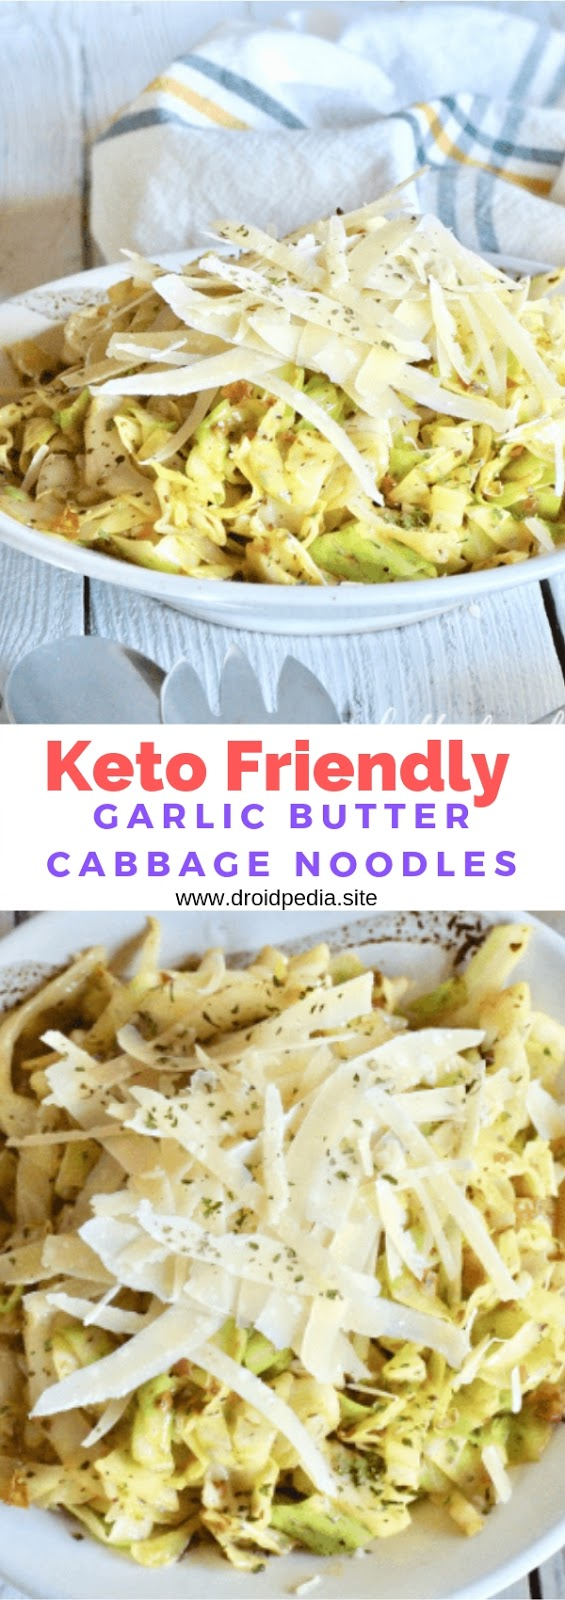 Keto Friendly Garlic Butter Cabbage Noodles #healthy #lunch #sidedish #keto #cabbage #noodles